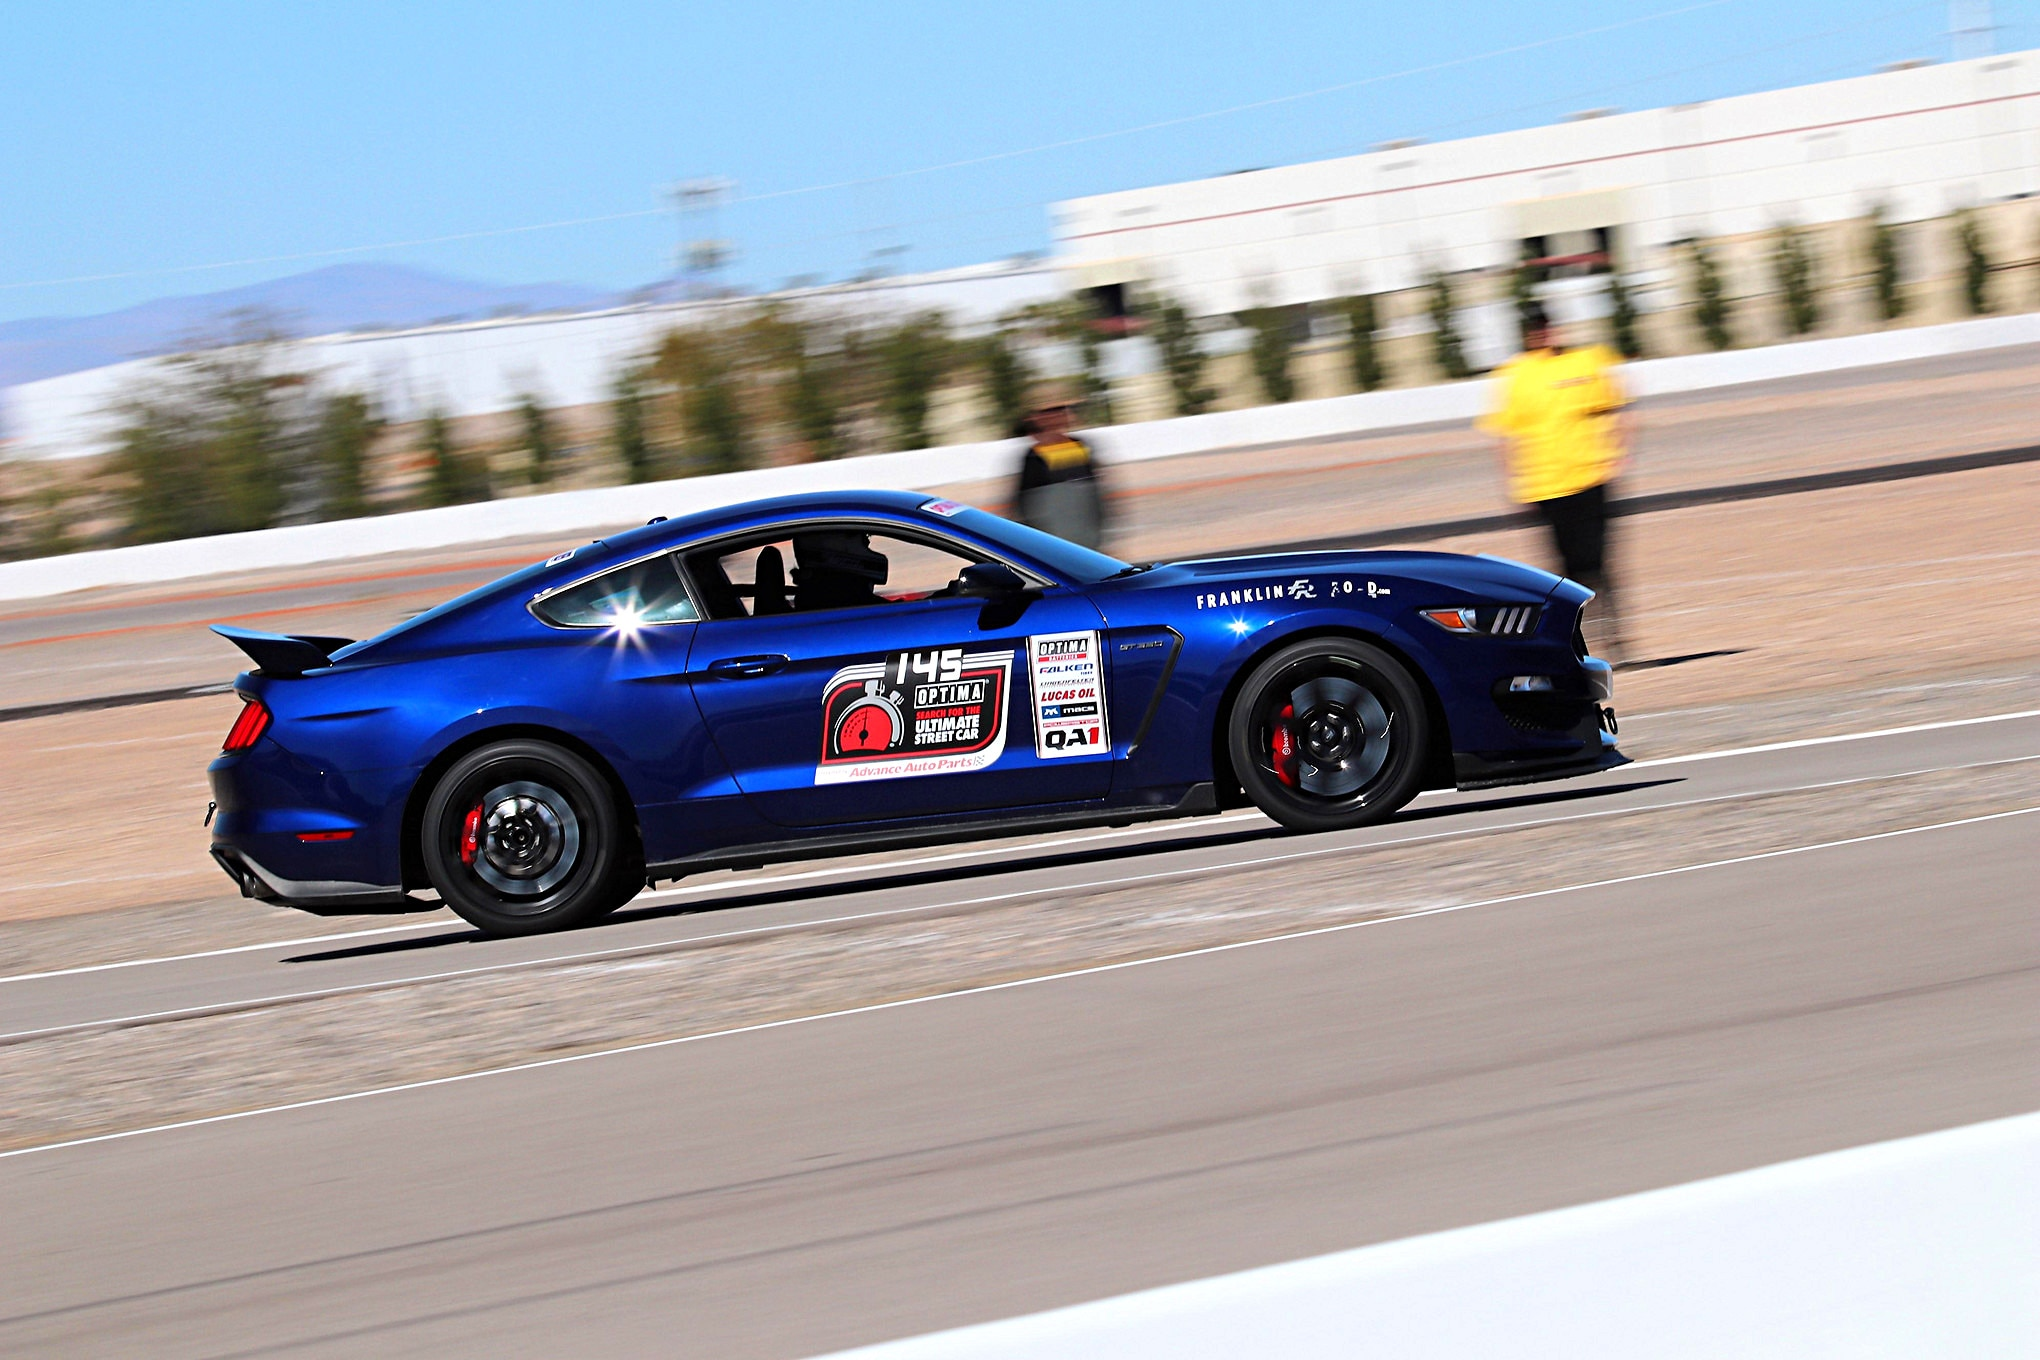 MMFF Todd Besendorfer 2016 Ford Mustang DriveOPTIMA LVMS 2019  53